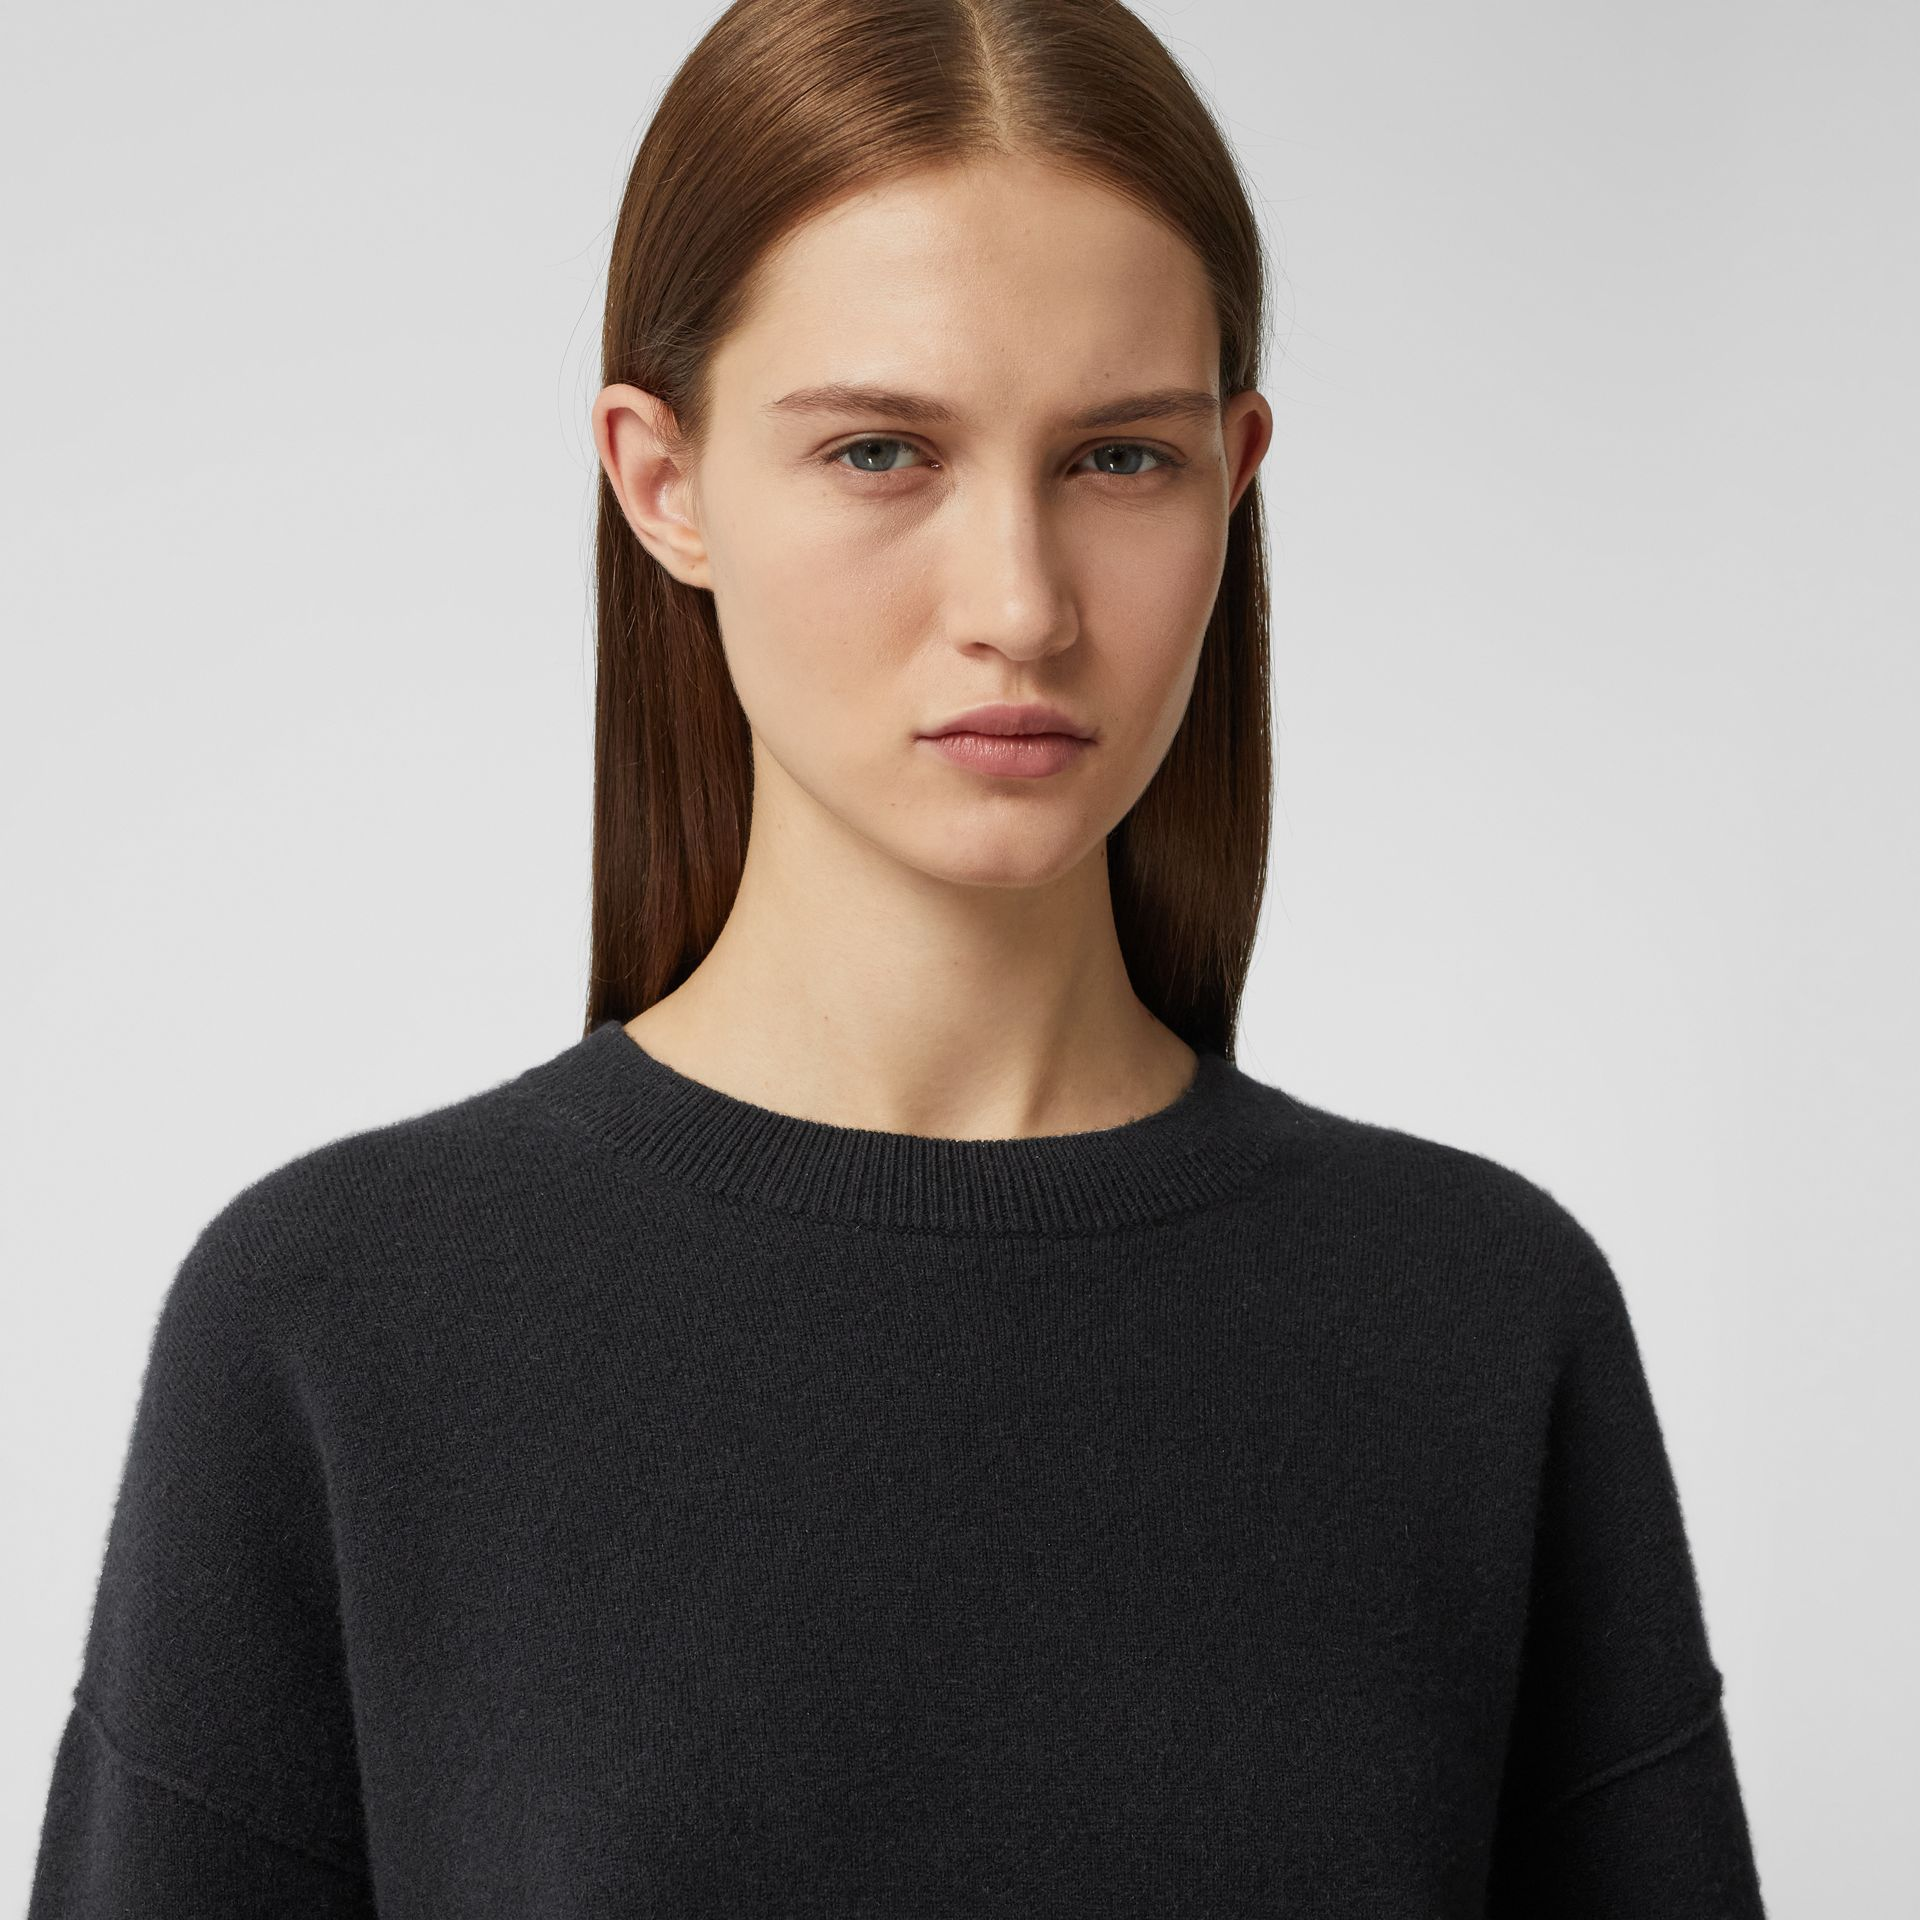 Monogram Motif Cashmere Blend Sweater in Black - Women | Burberry - gallery image 1